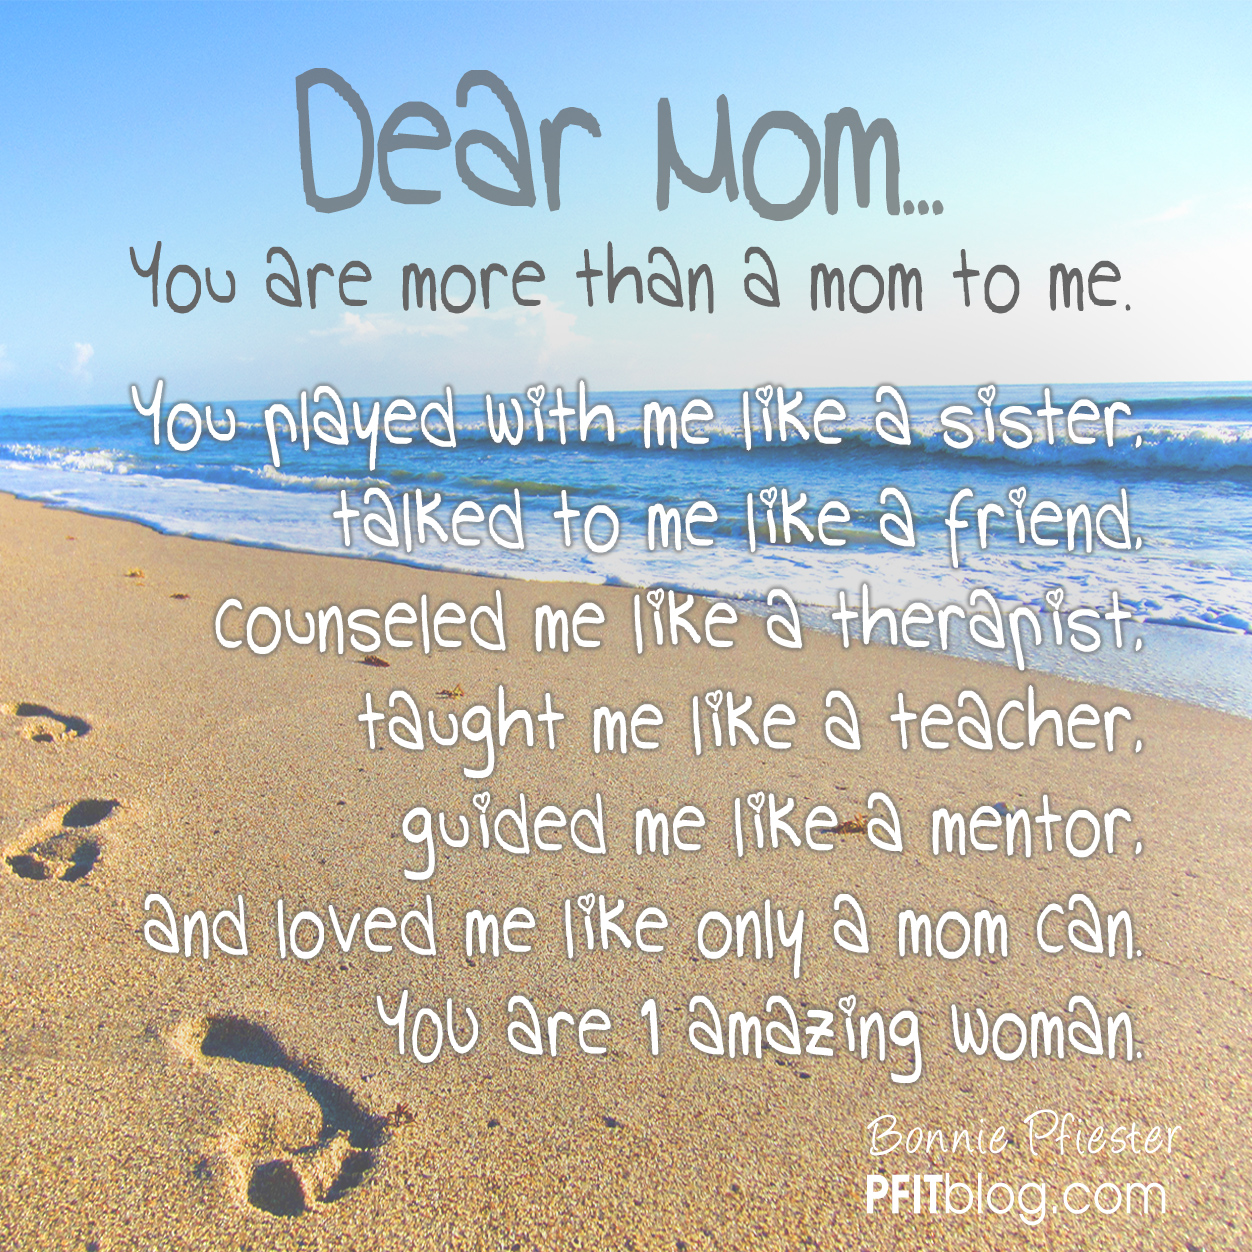 We Are Brothers From Different Mothers Quotes: Dear Mother In Law Quotes. QuotesGram